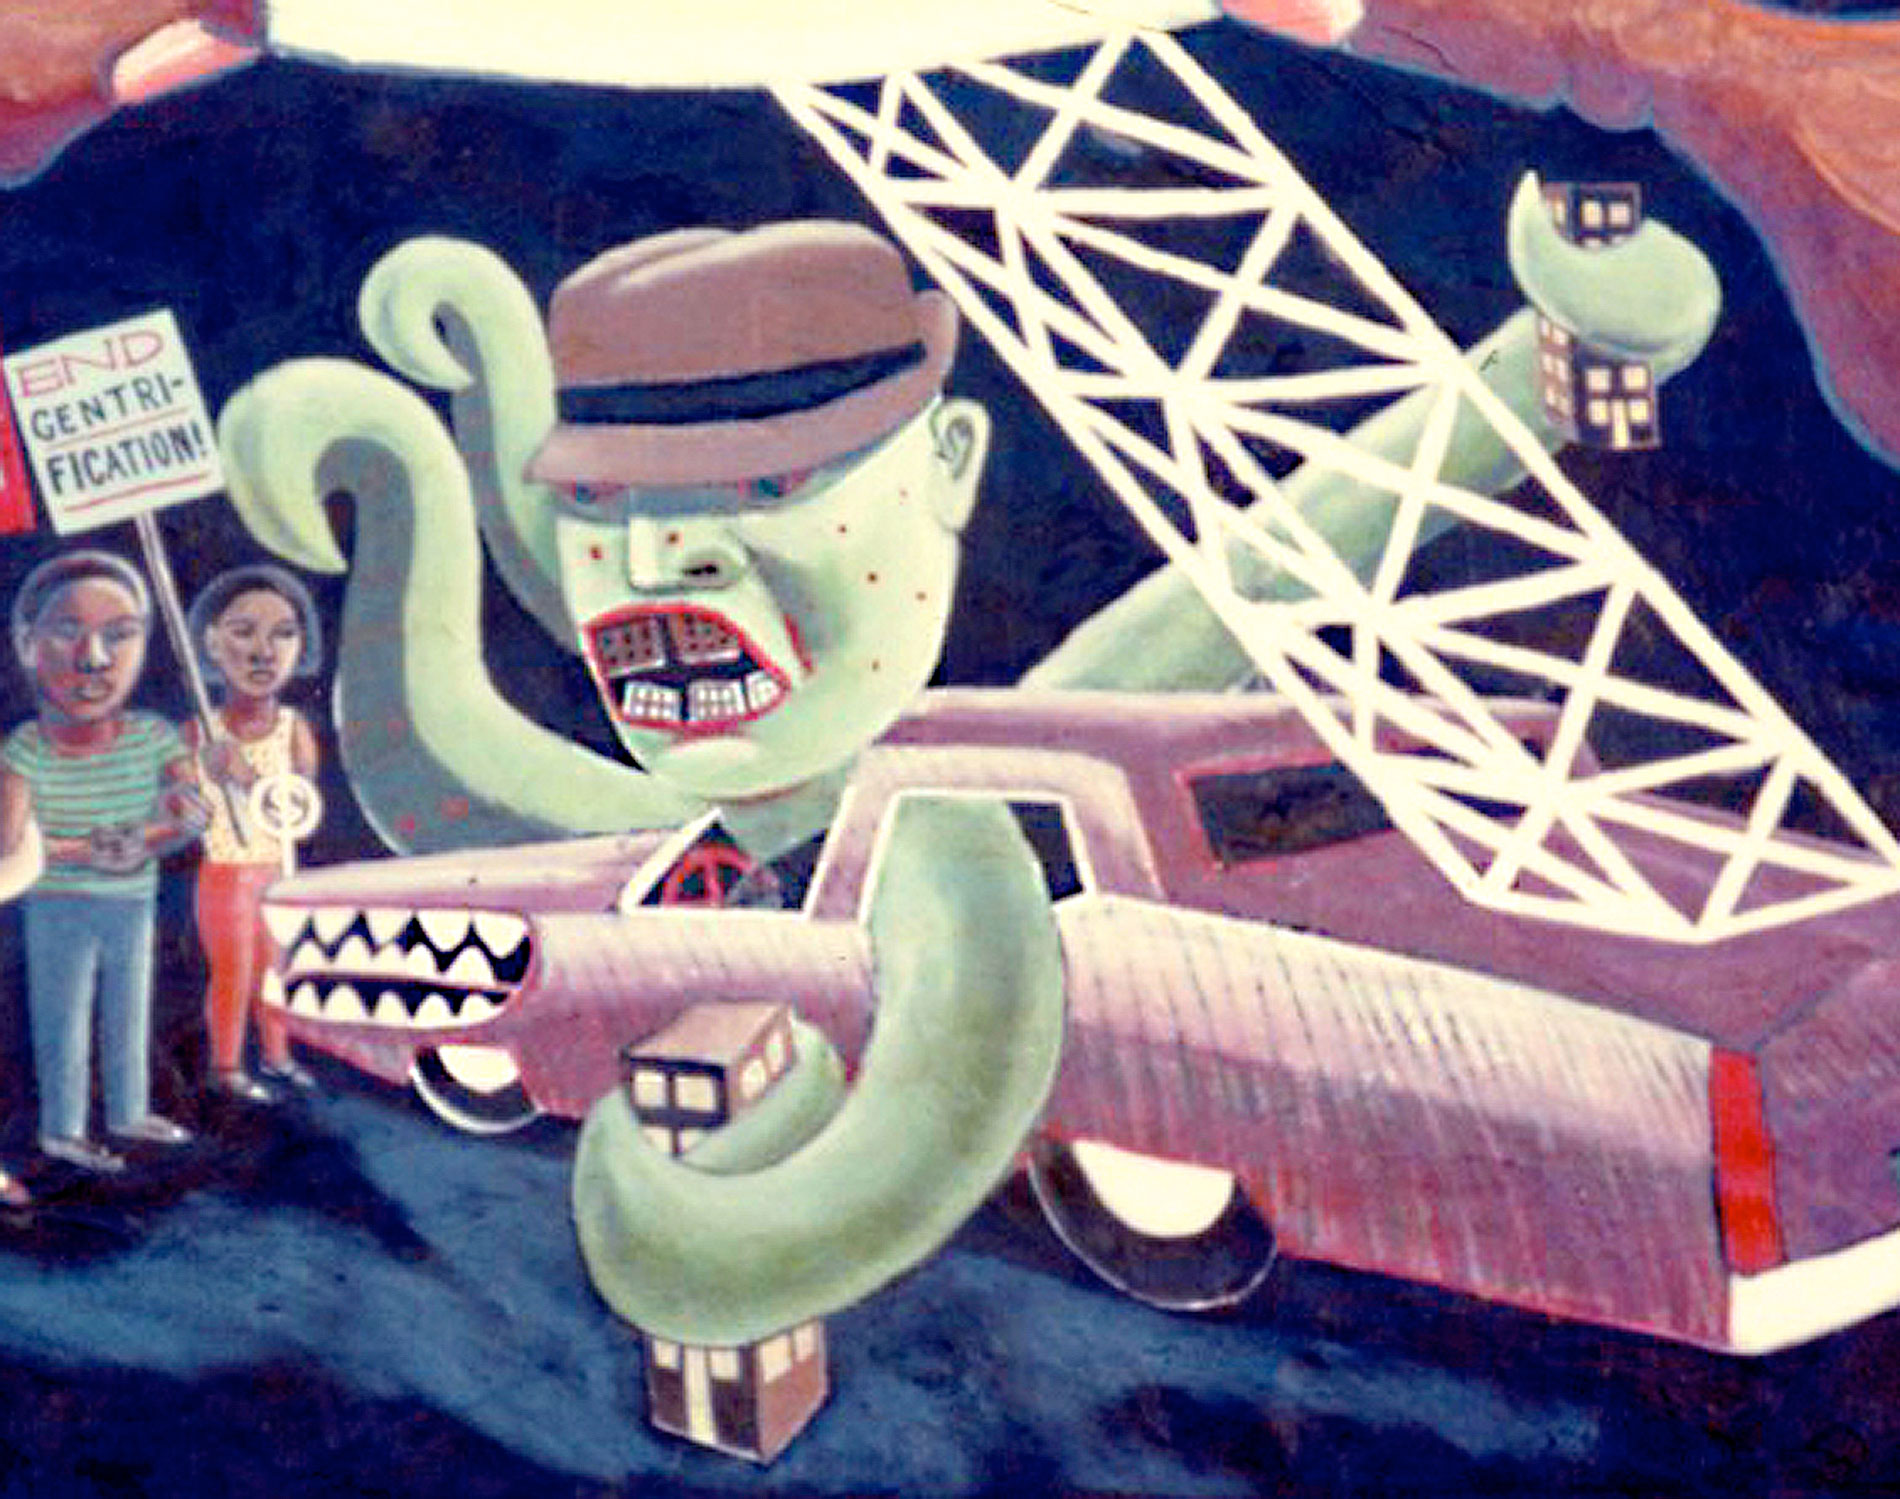 """Octopus Mobster Landlord"" by Keith Christensen, detail from  La Lucha Continua  collective mural   Photo © Camille Perrottet"